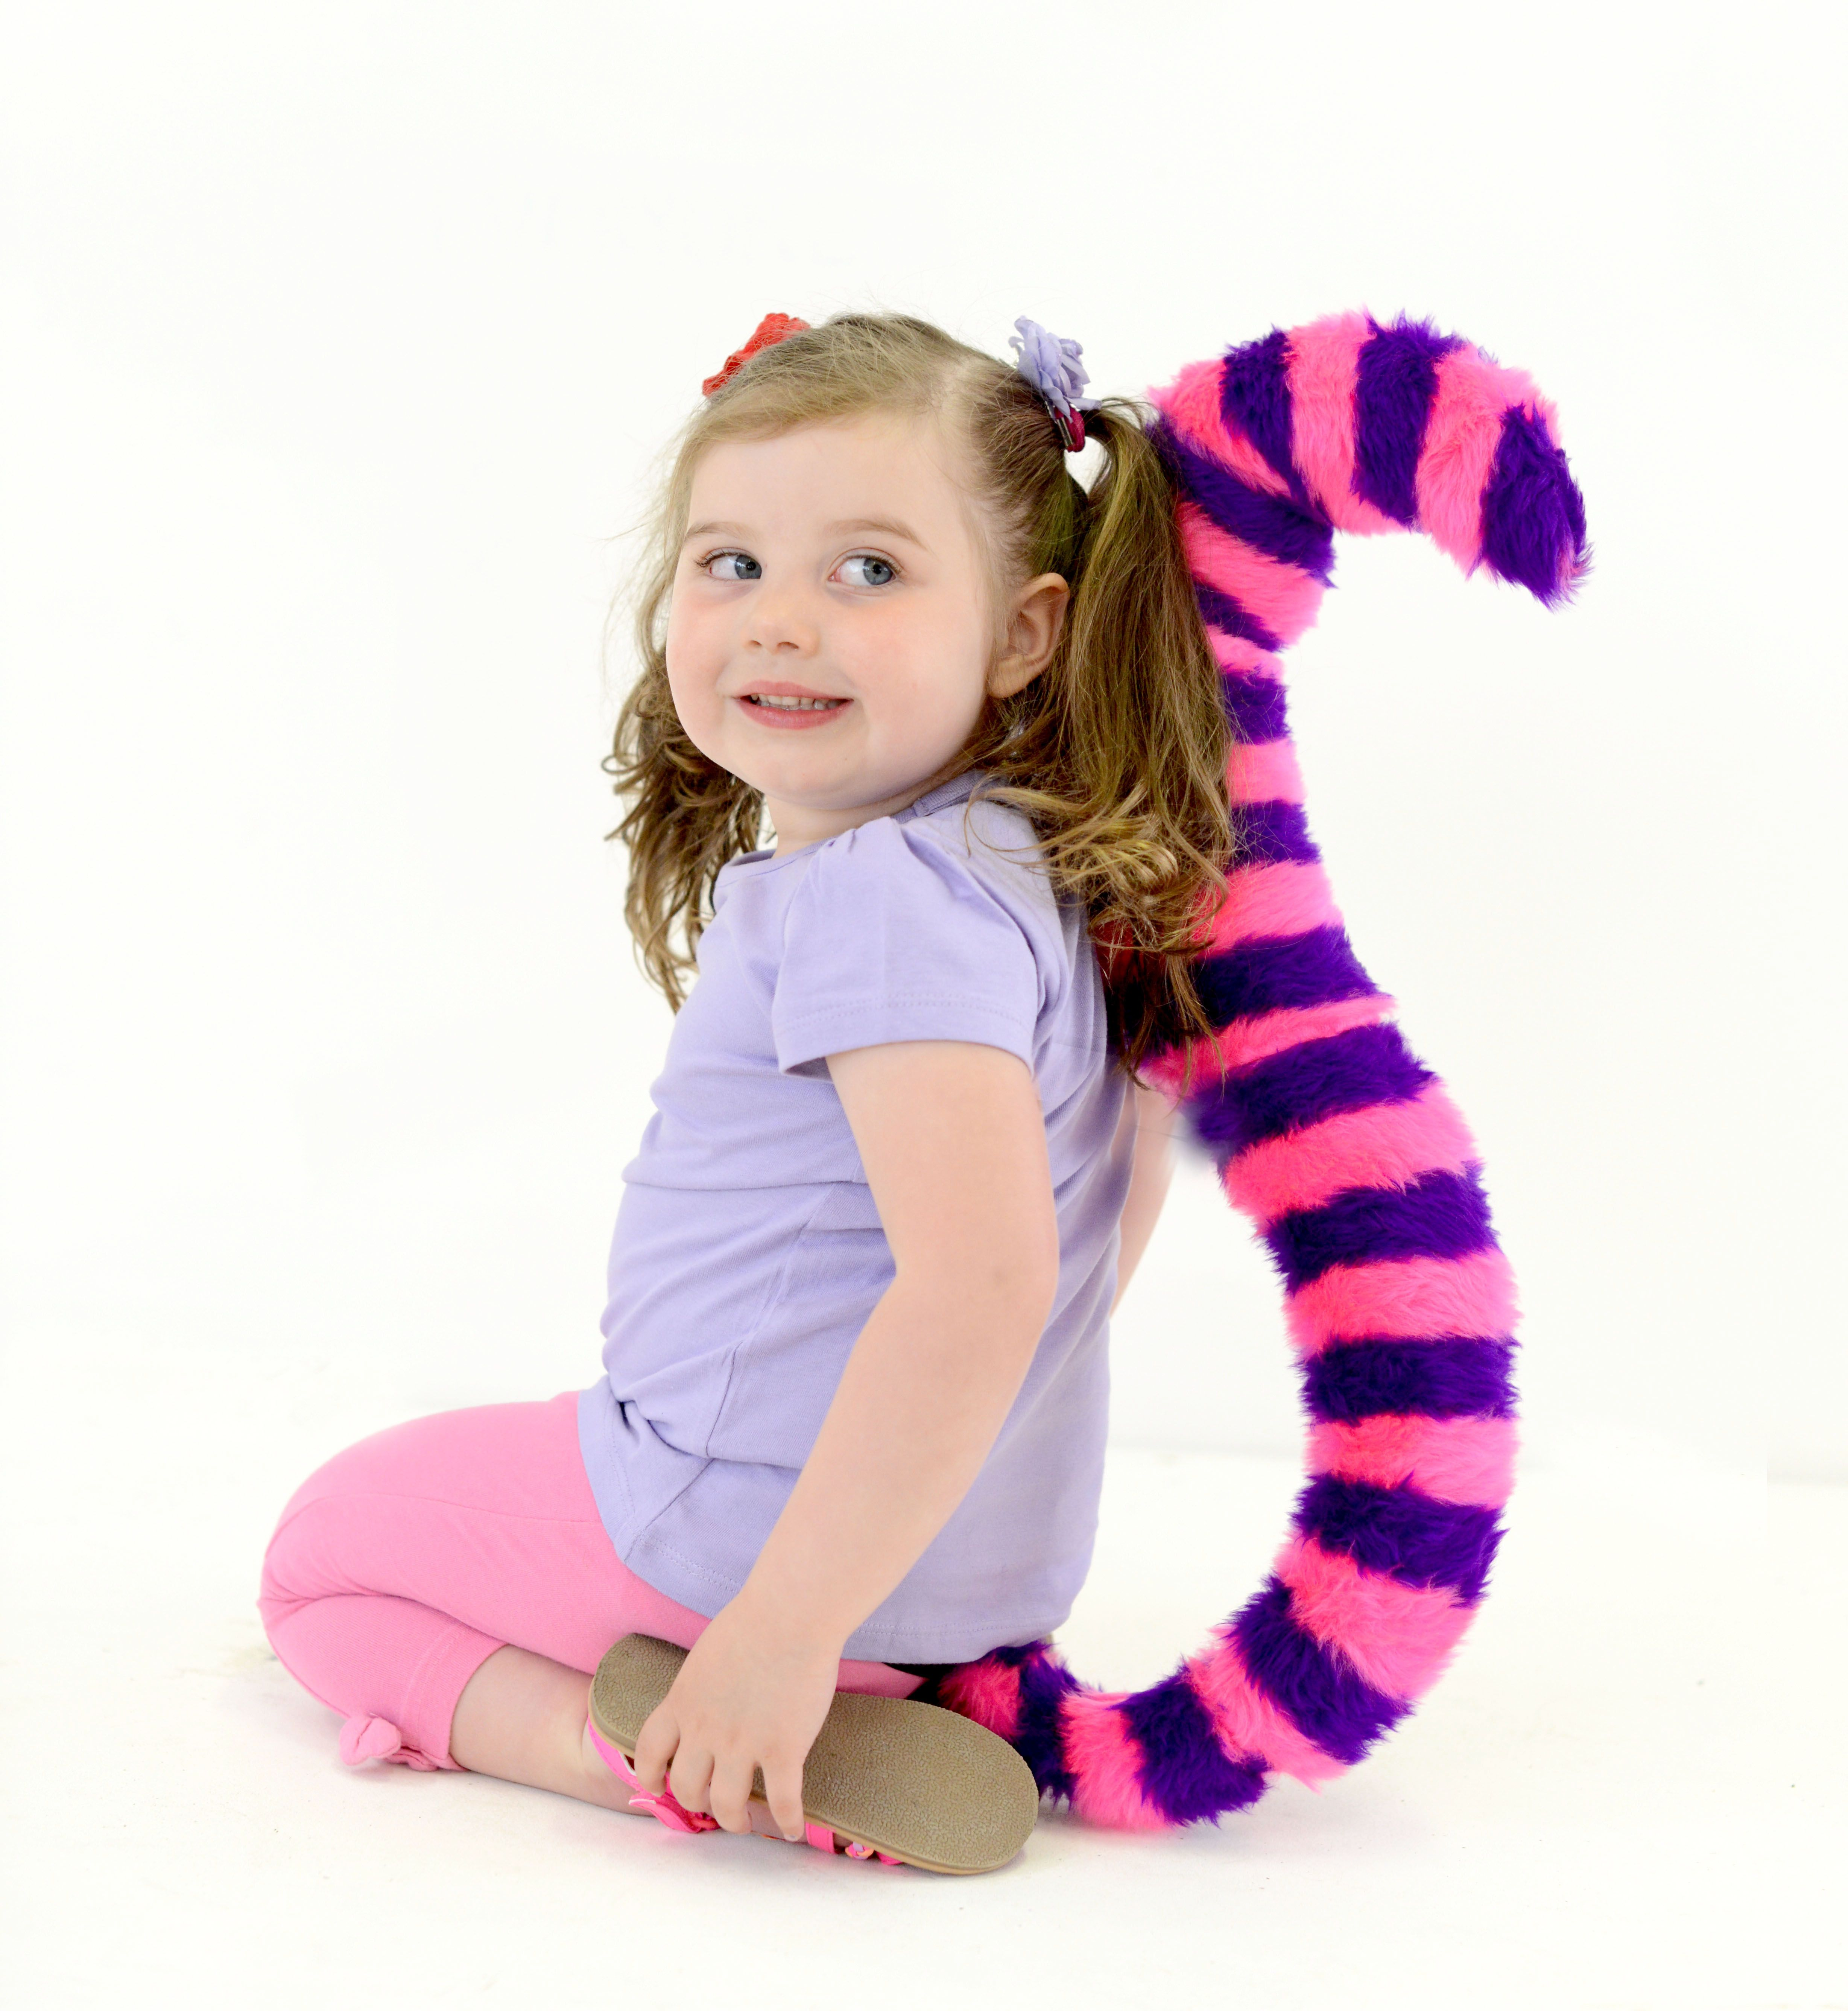 3bcb672566c World book day ... Cheshire cat tail!